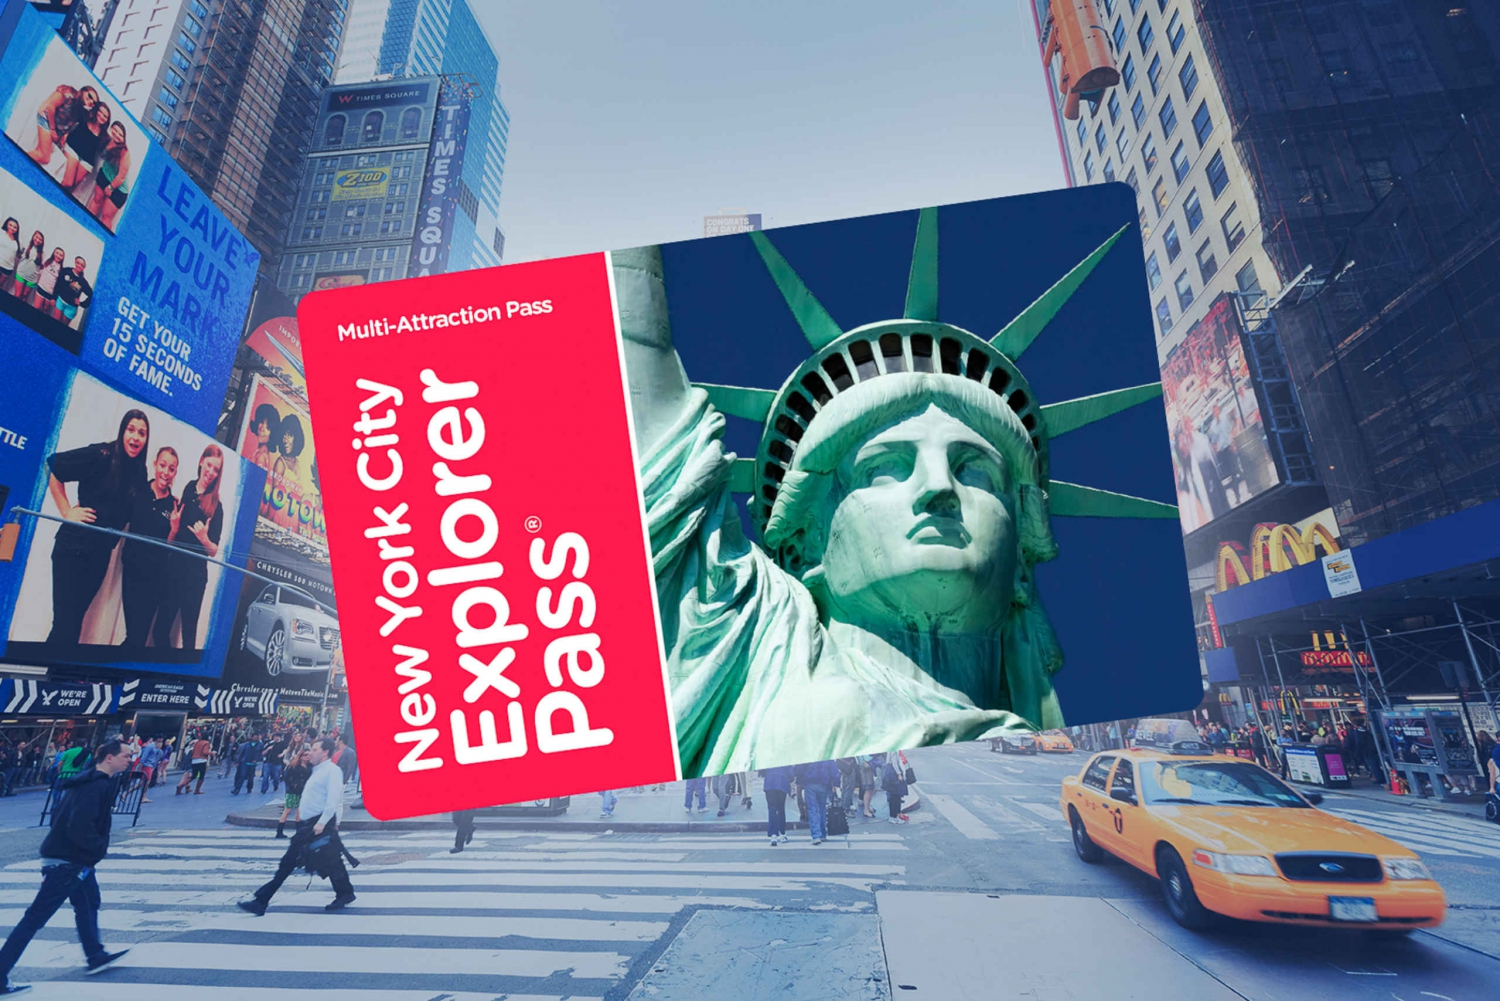 NYC Explorer Pass: Over 85 Tours and Attractions